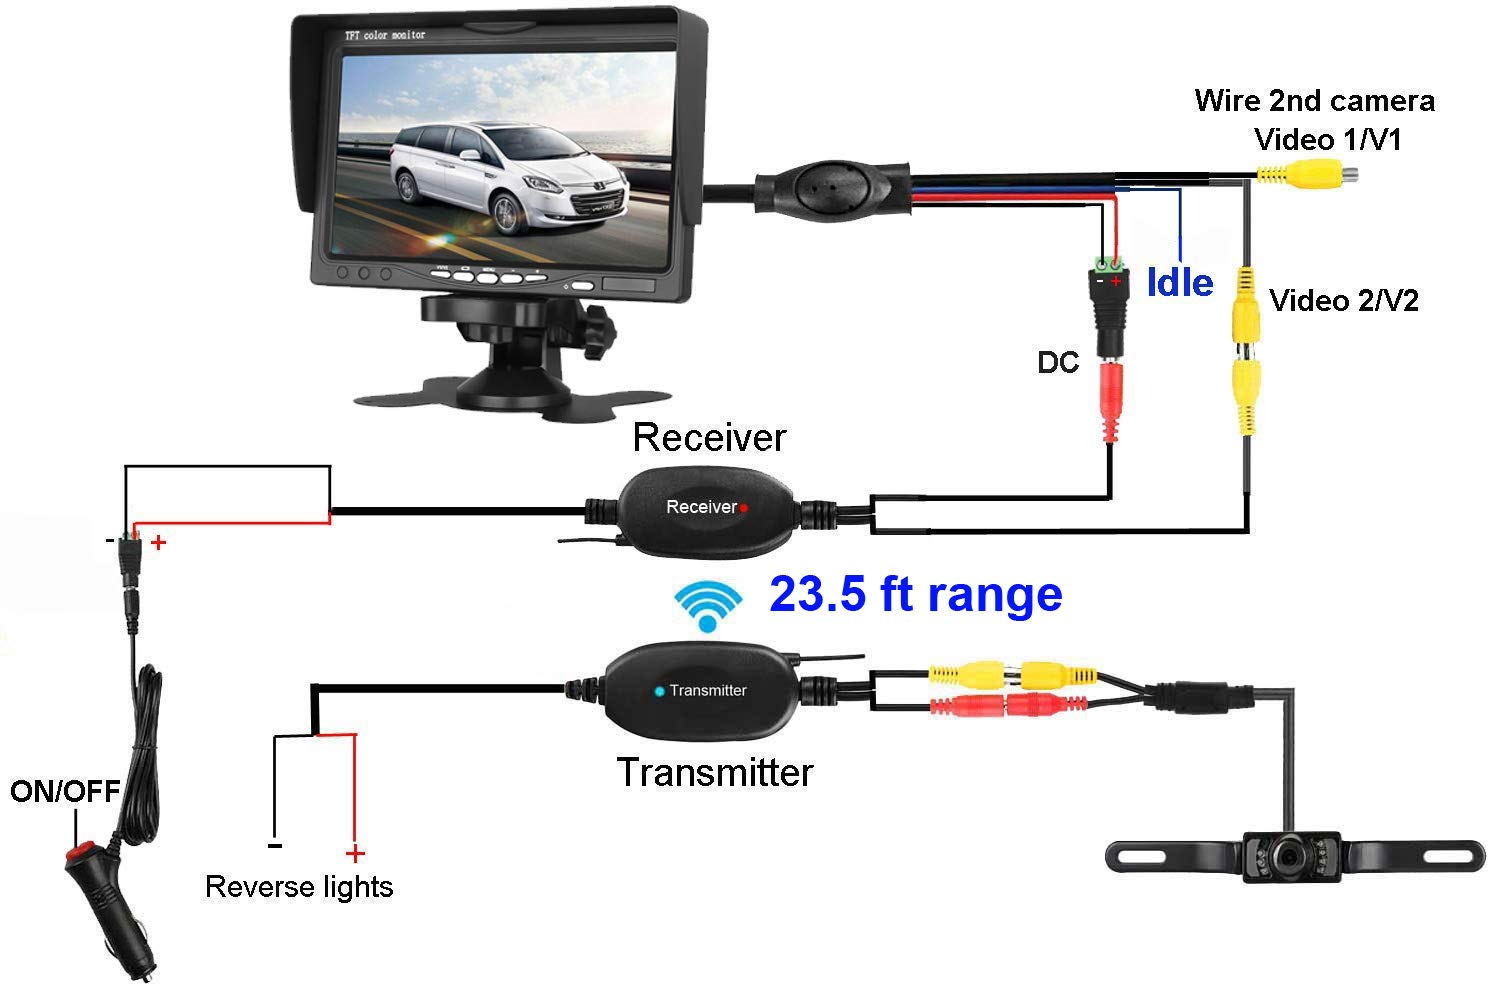 Emmako Backup Camera Wireless 7 Monitor Kit For Car//SUV//RV//Van Rear//Side//Front View System Guide Lines ON//OFF Width and Length Adjustable IP68 Waterproof Night Vision Reversing Use